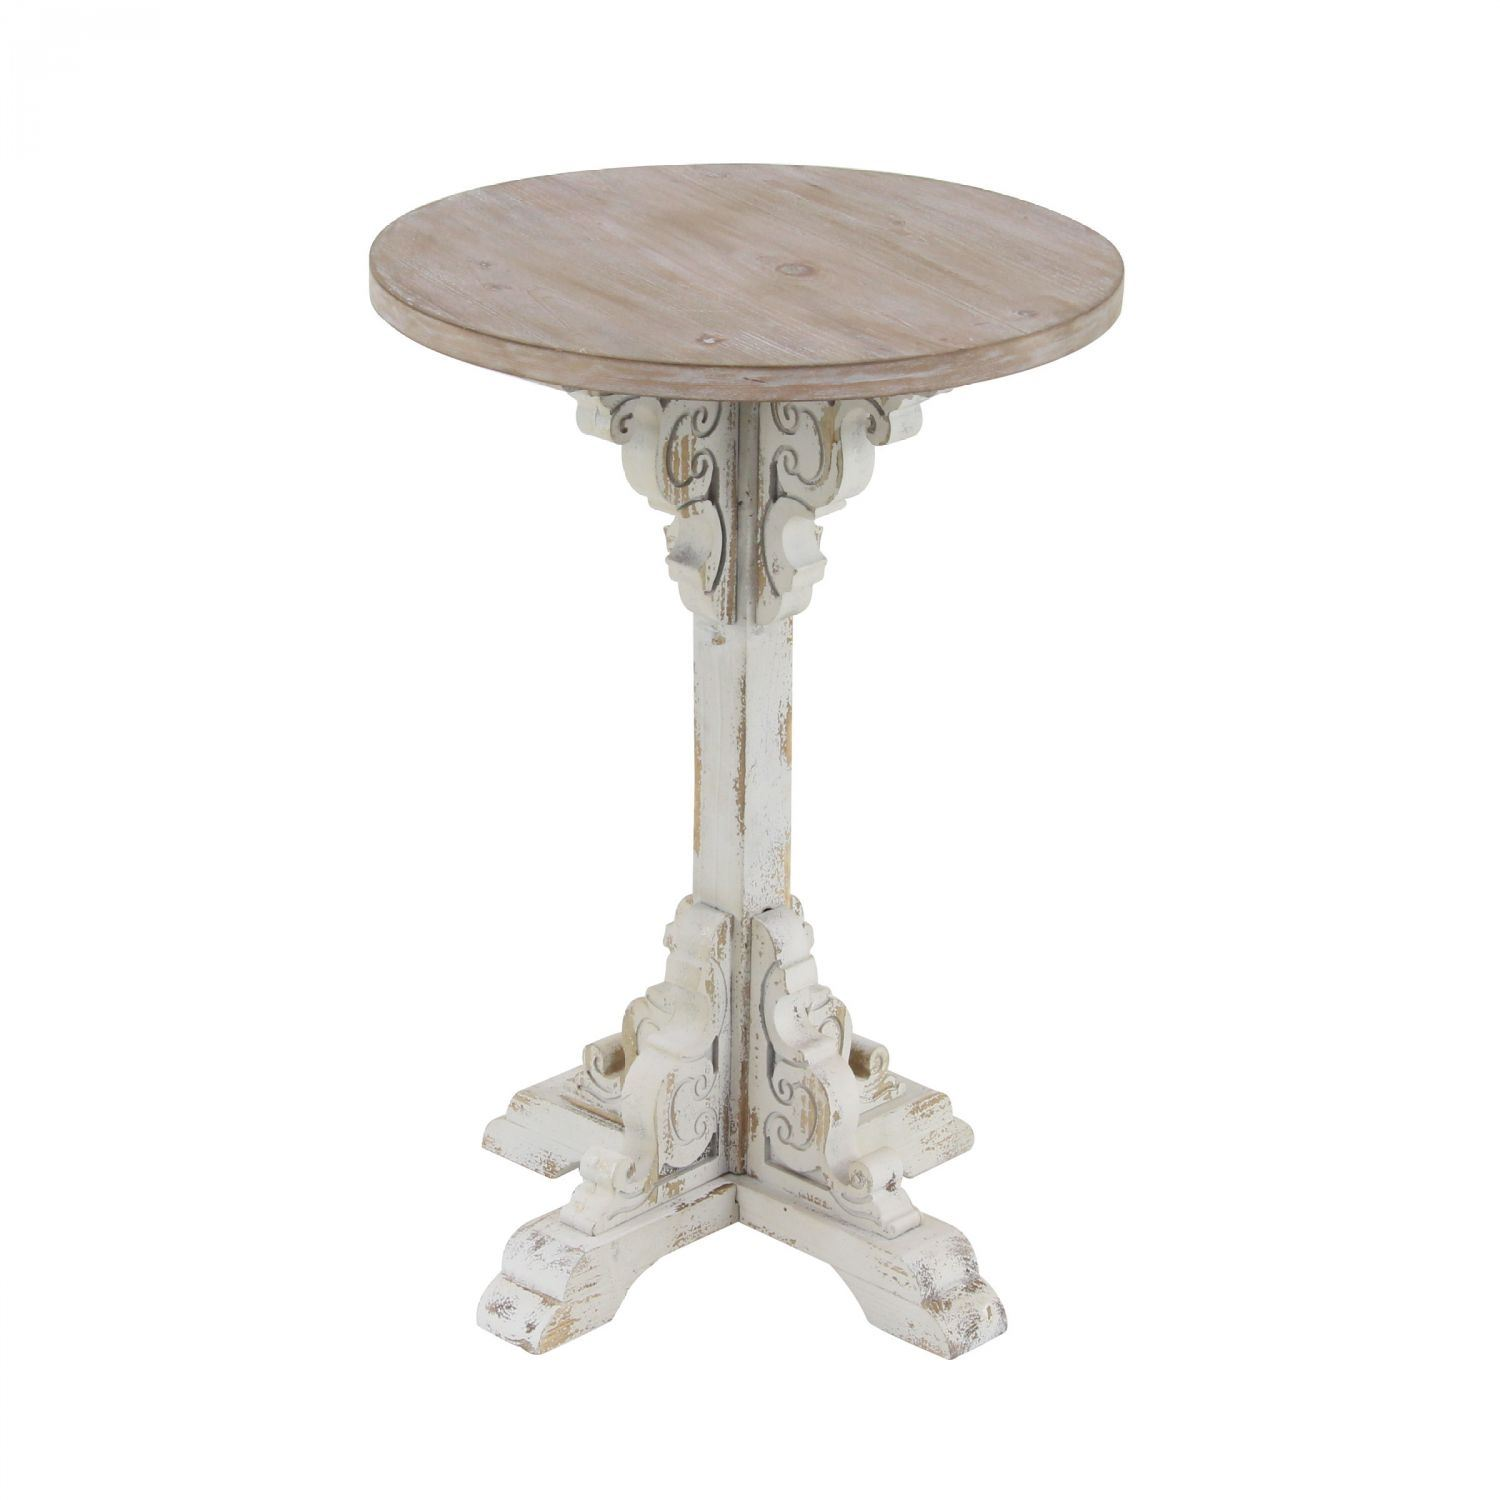 antique white accent table uma enterprises afw vintage end round dining set outdoor shade umbrella acrylic clear side tablecloth small grey farmhouse kitchen wine cabinet modern